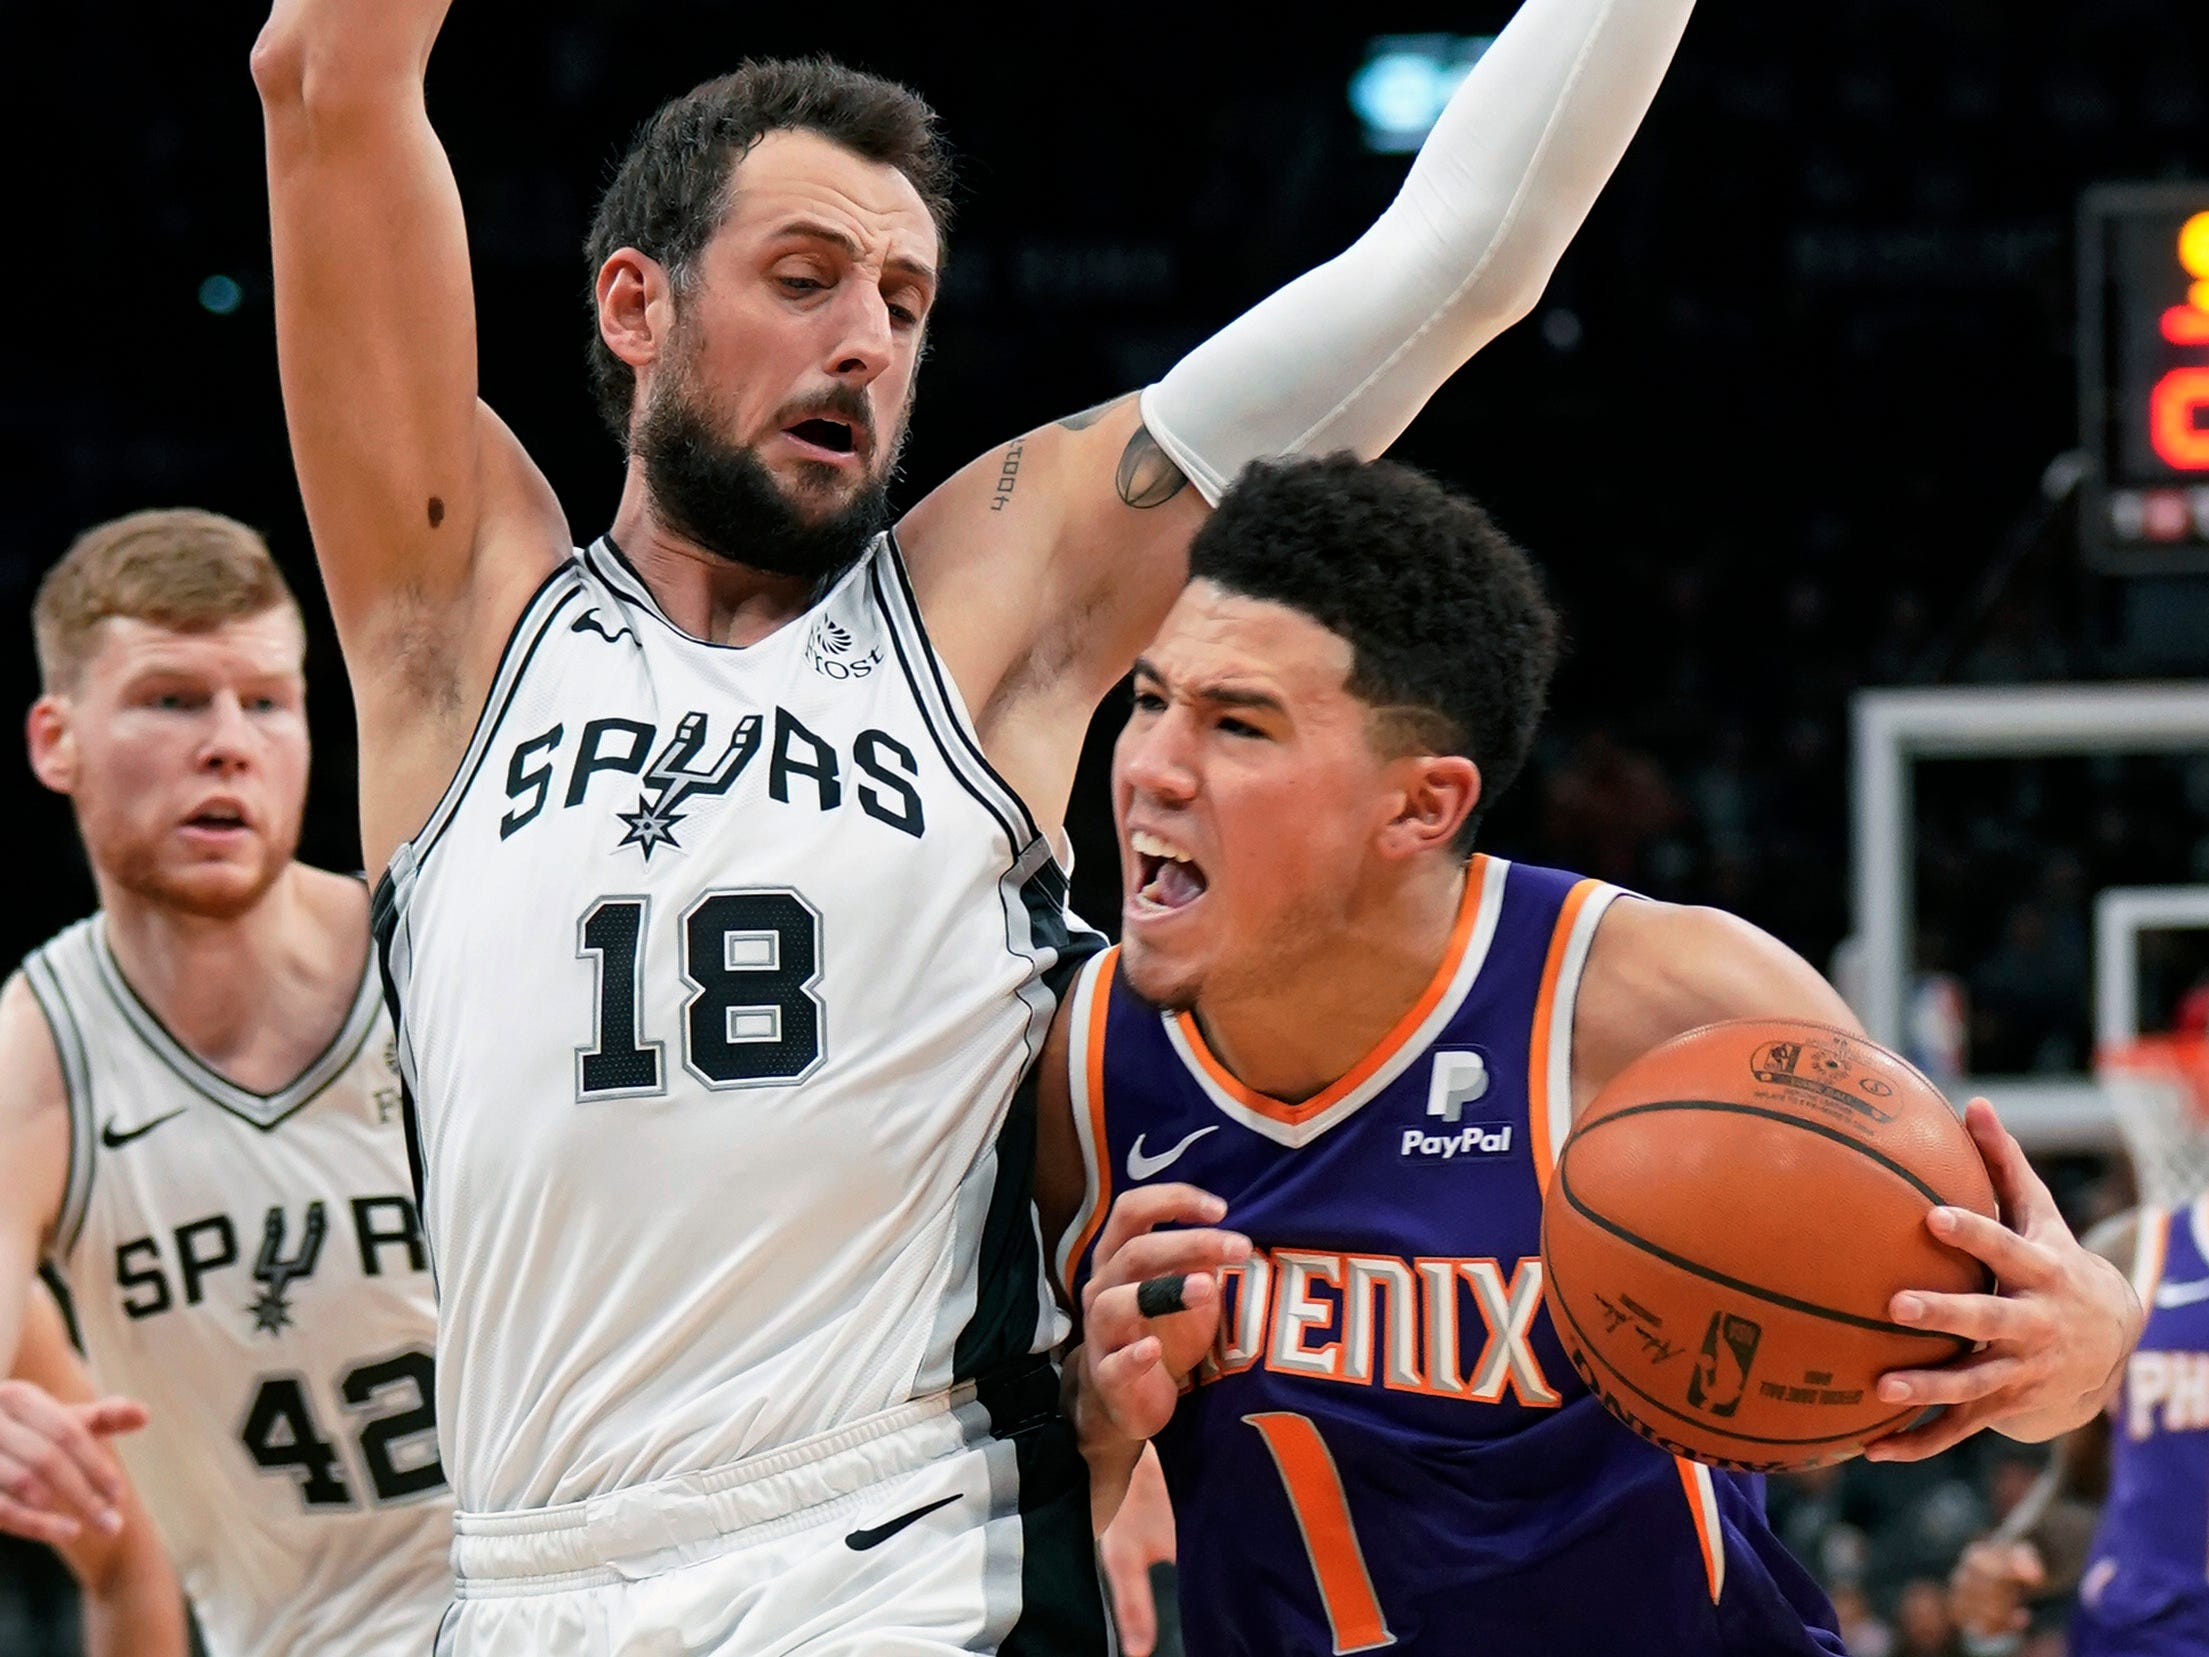 Phoenix Suns' Devin Booker (1) drives against San Antonio Spurs' Marco Belinelli during the first half of an NBA basketball game, Tuesday, Jan. 29, 2019, in San Antonio. (AP Photo/Darren Abate)